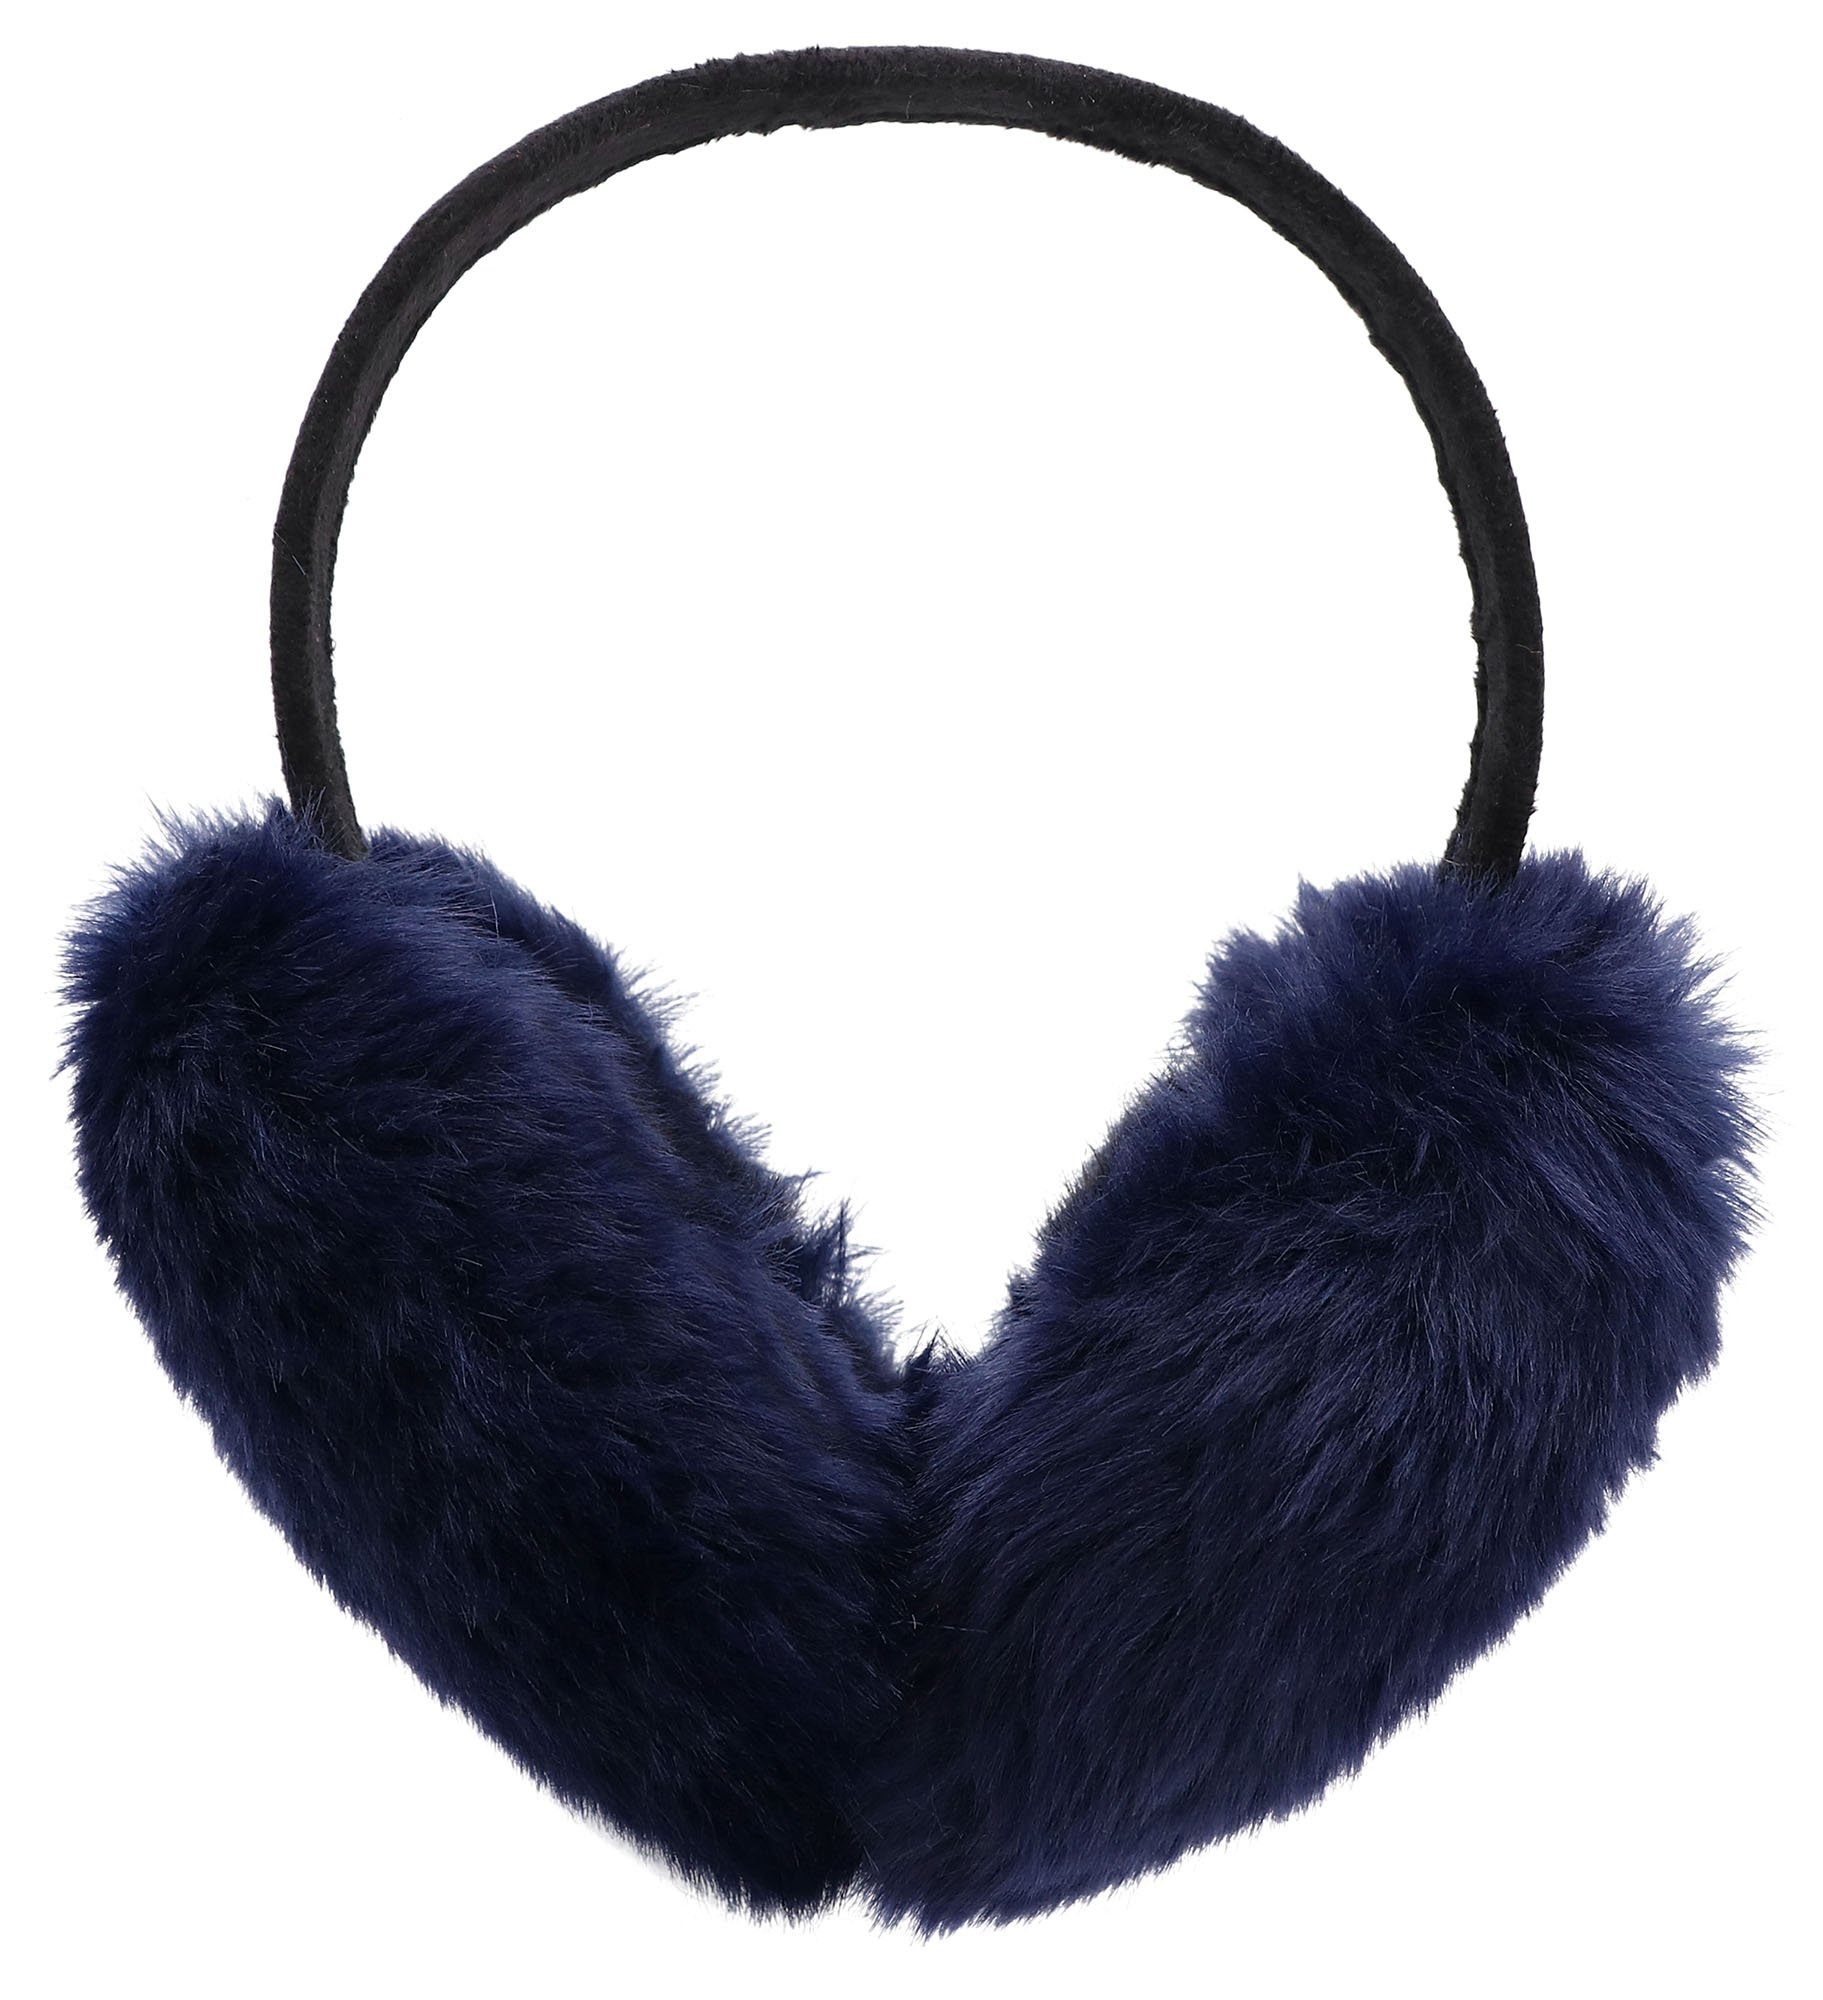 Simplicity Men Women's Winter Foldable Plush Furry Ear Muffs, Lined Trim, Navy